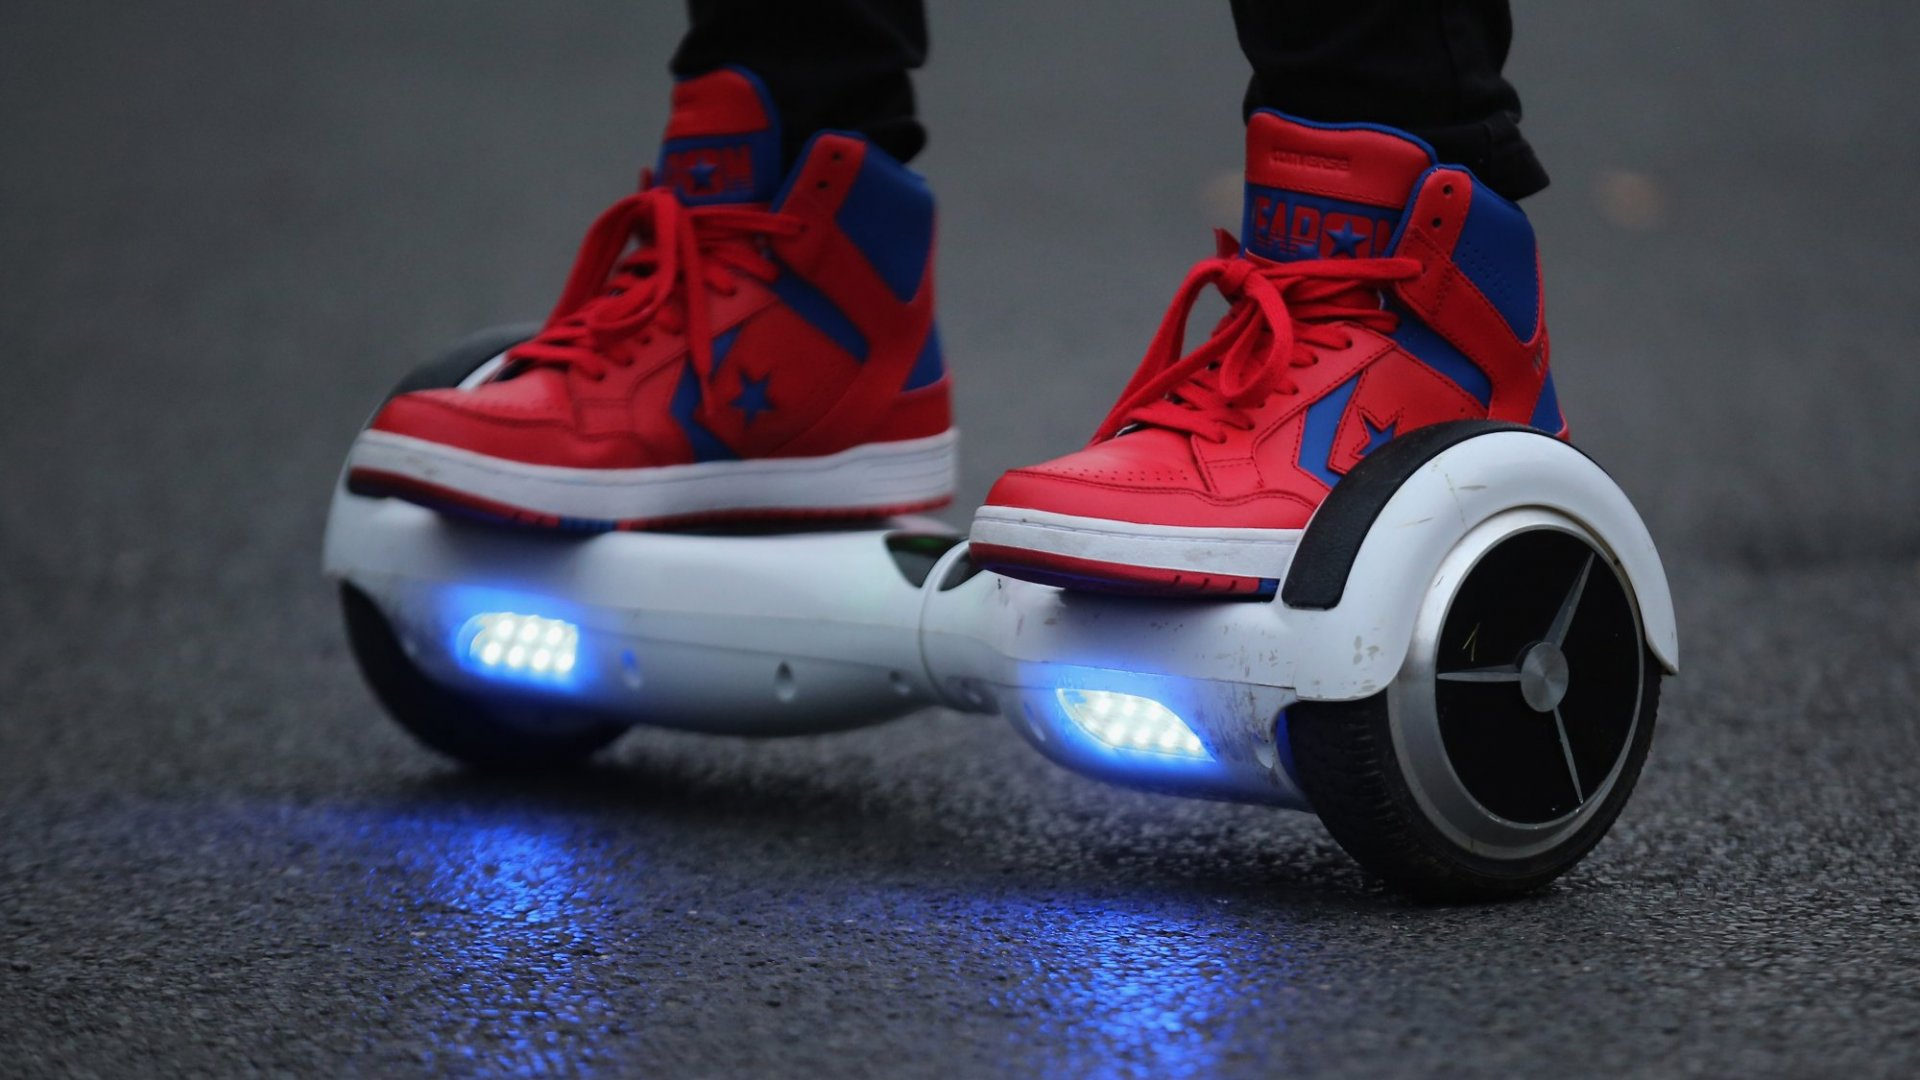 Delta Bans Hoverboards, Calling Them a Fire Hazard